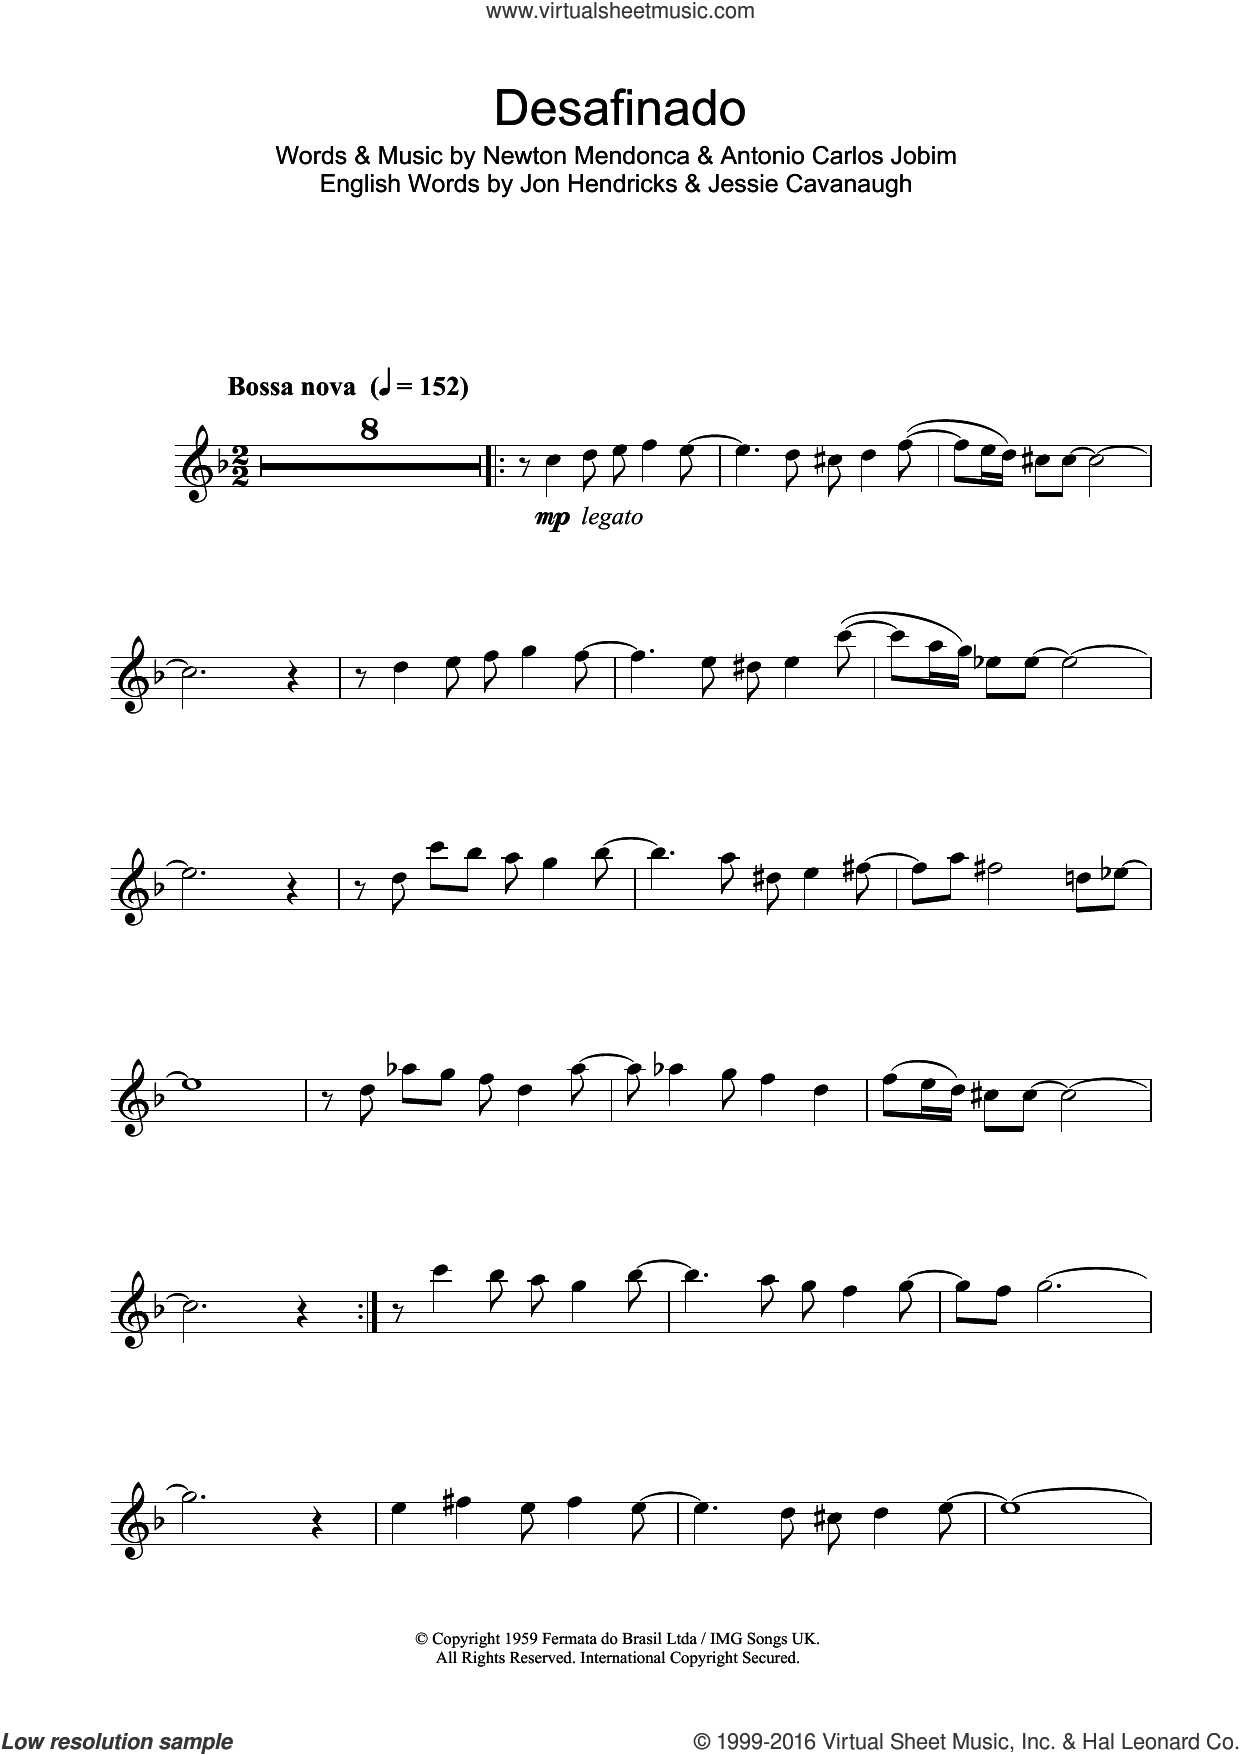 Desafinado (Slightly Out Of Tune) sheet music for tenor saxophone solo by Antonio Carlos Jobim and Jon Hendricks, intermediate tenor saxophone. Score Image Preview.